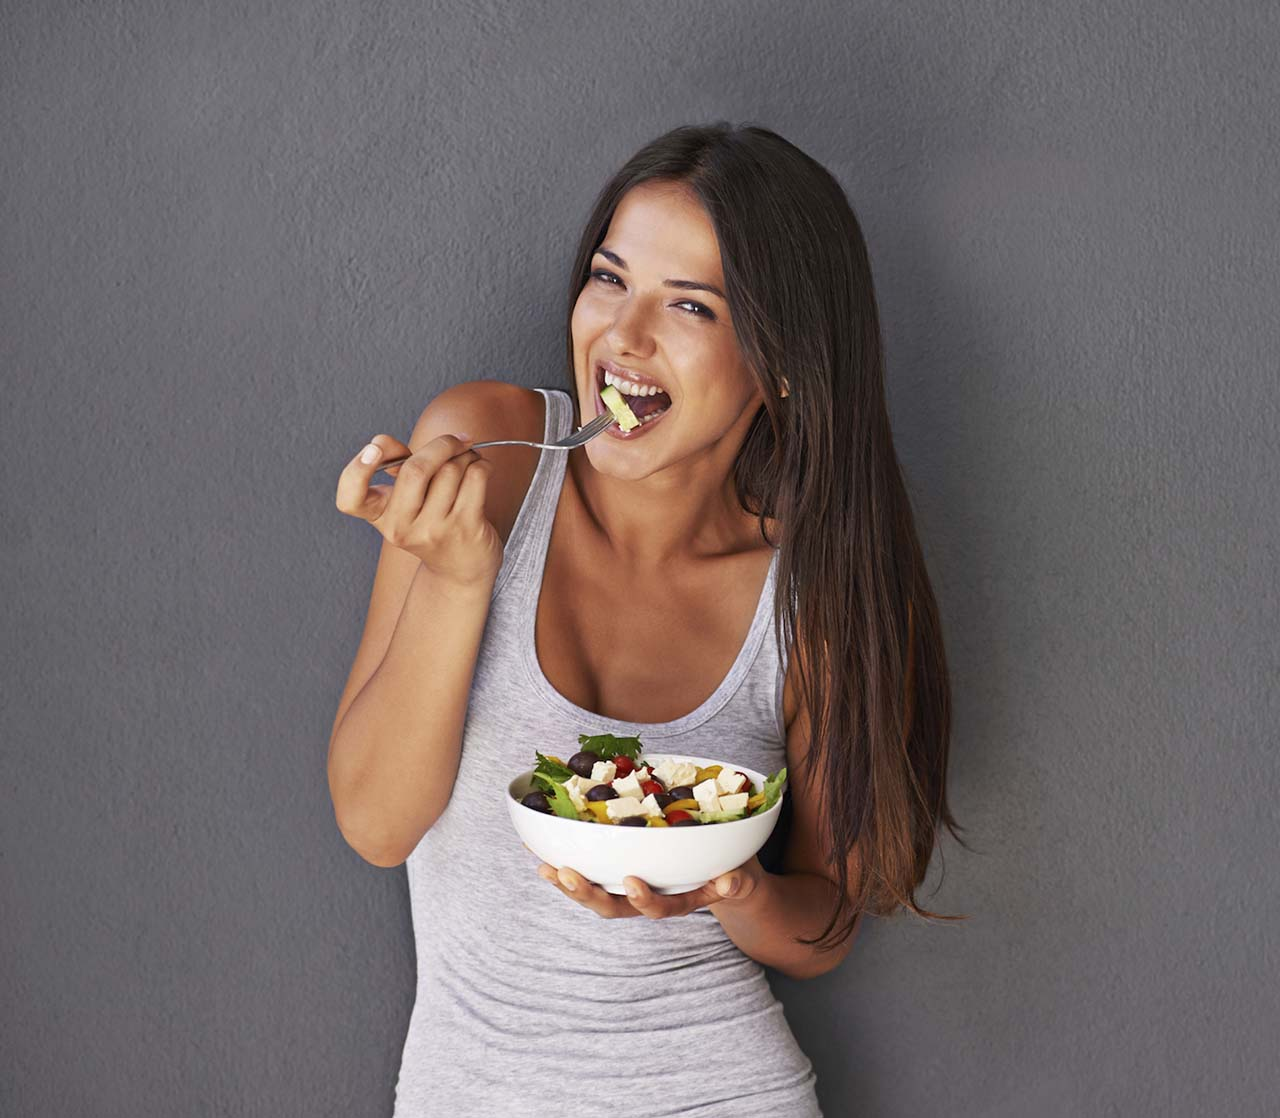 11 Unwritten Rules Of Having A Flawless Skin #11: Your Diet Matters